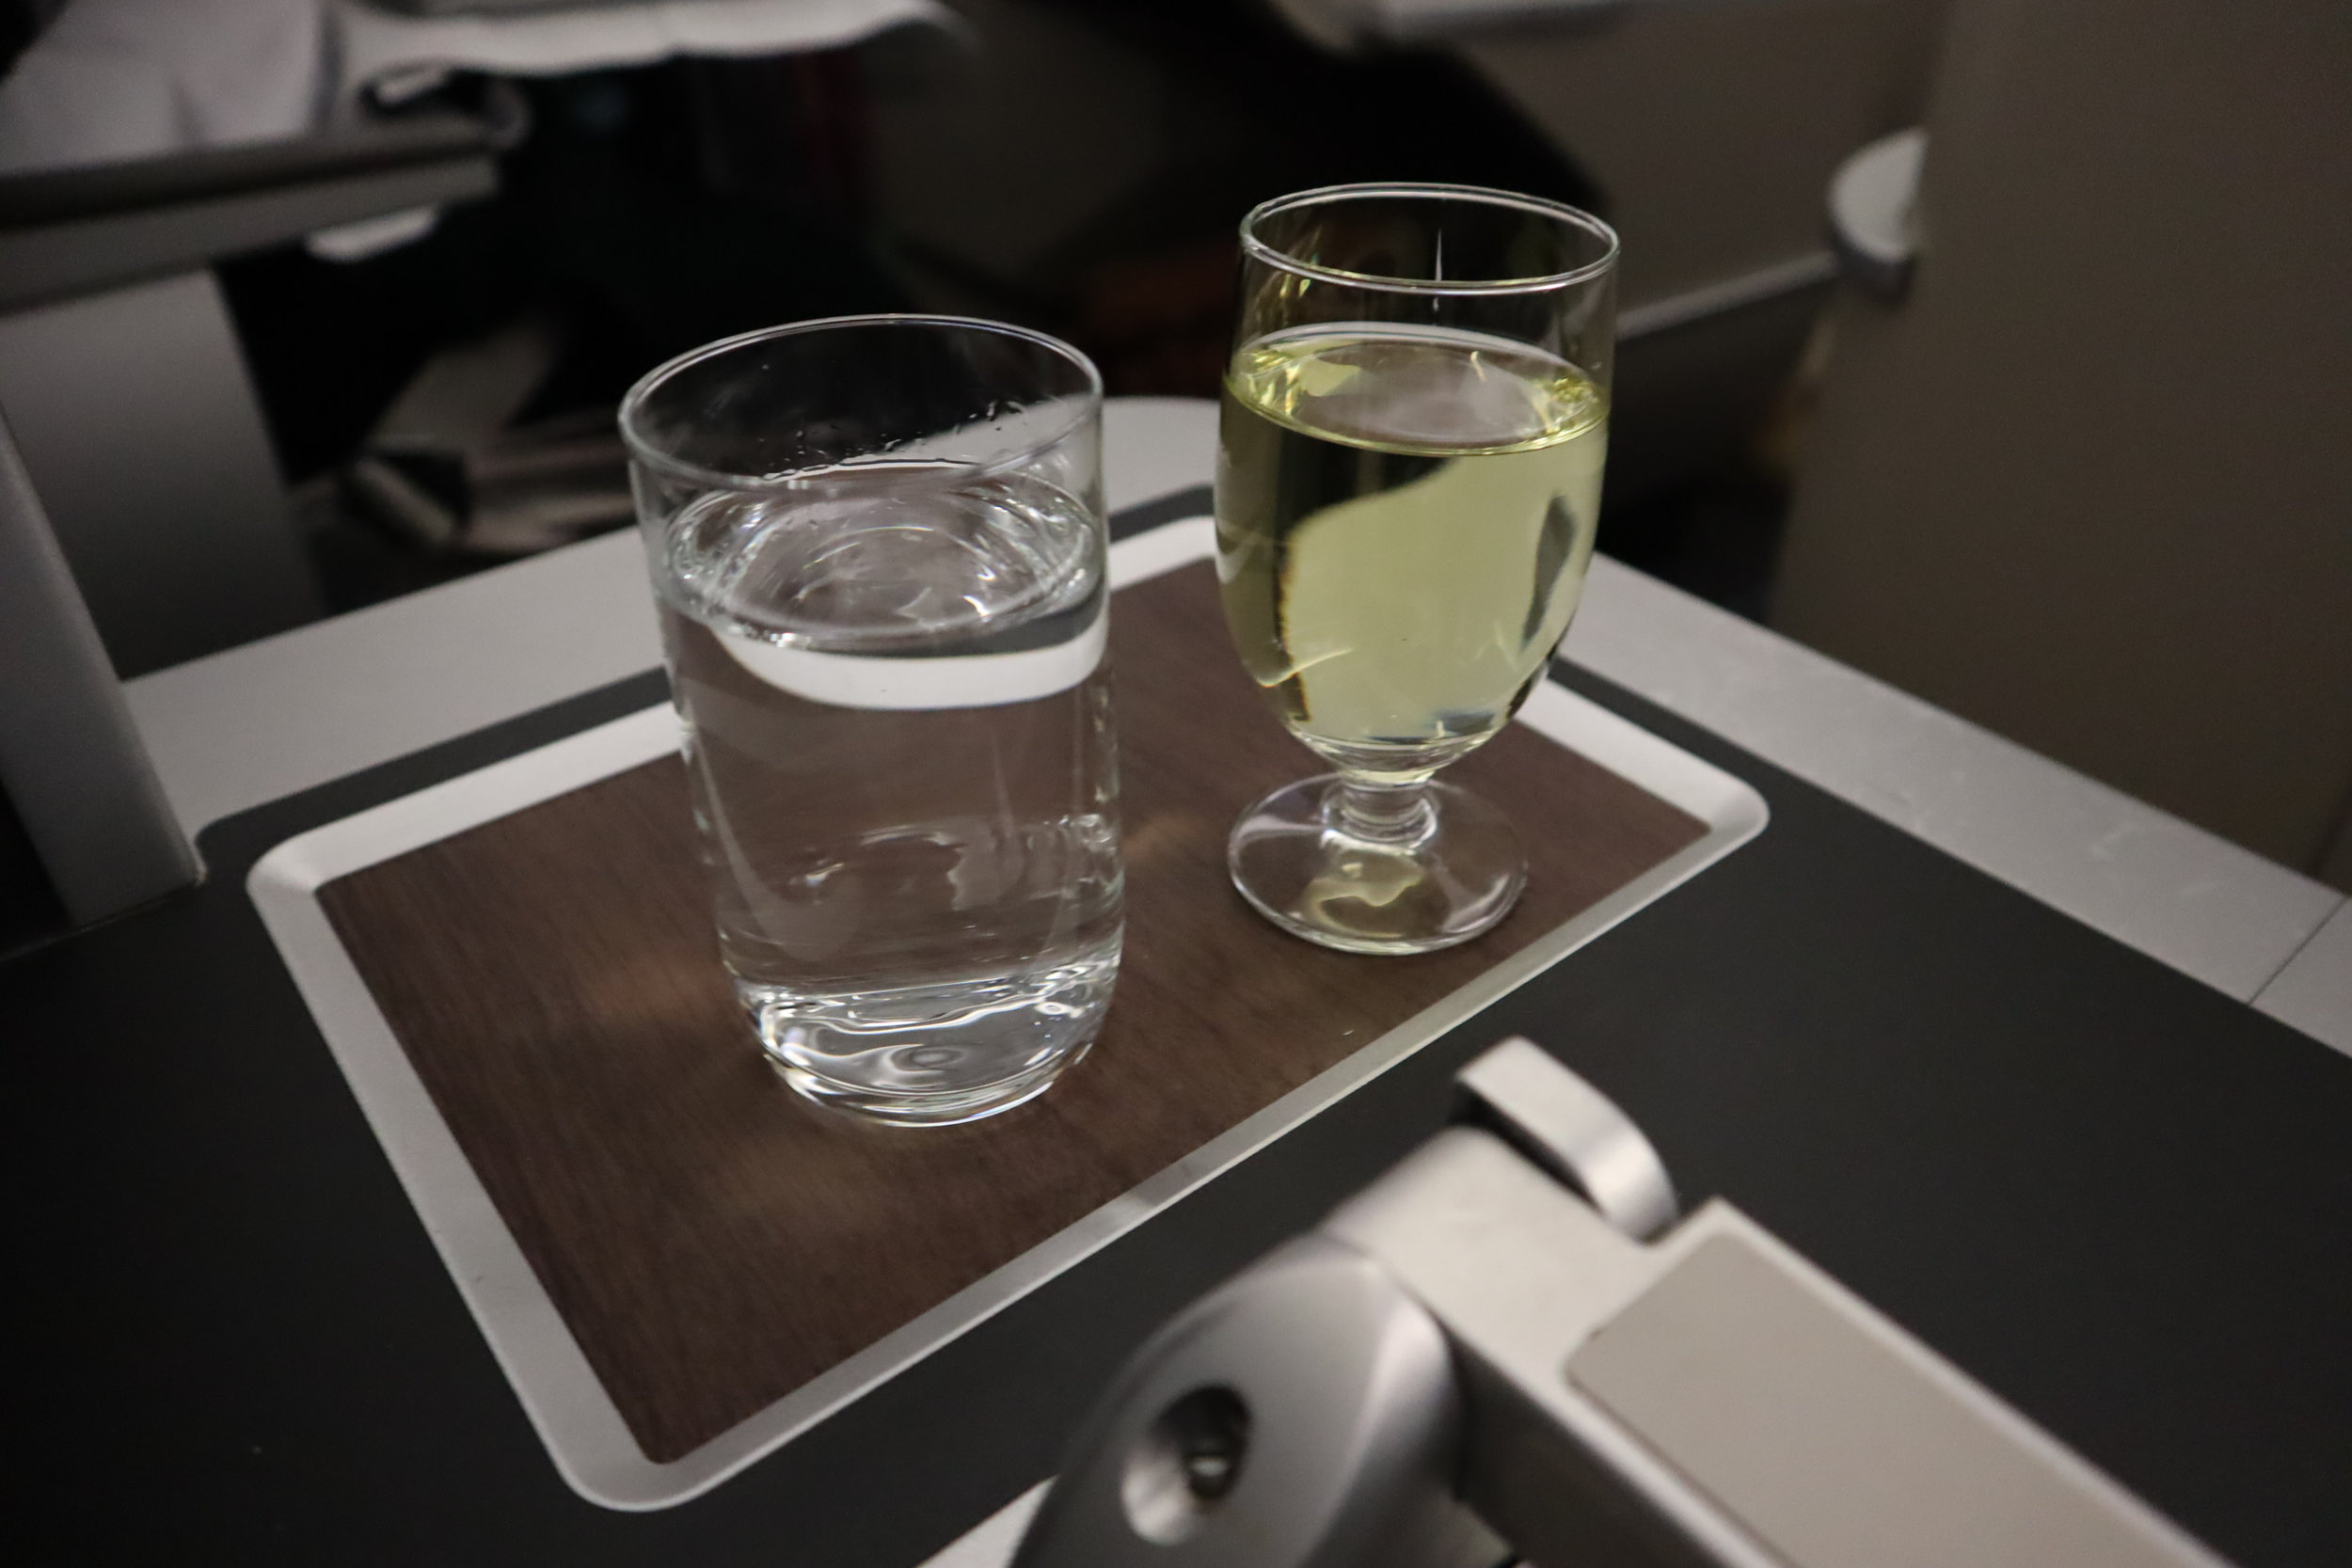 TAP Air Portugal business class – White wine